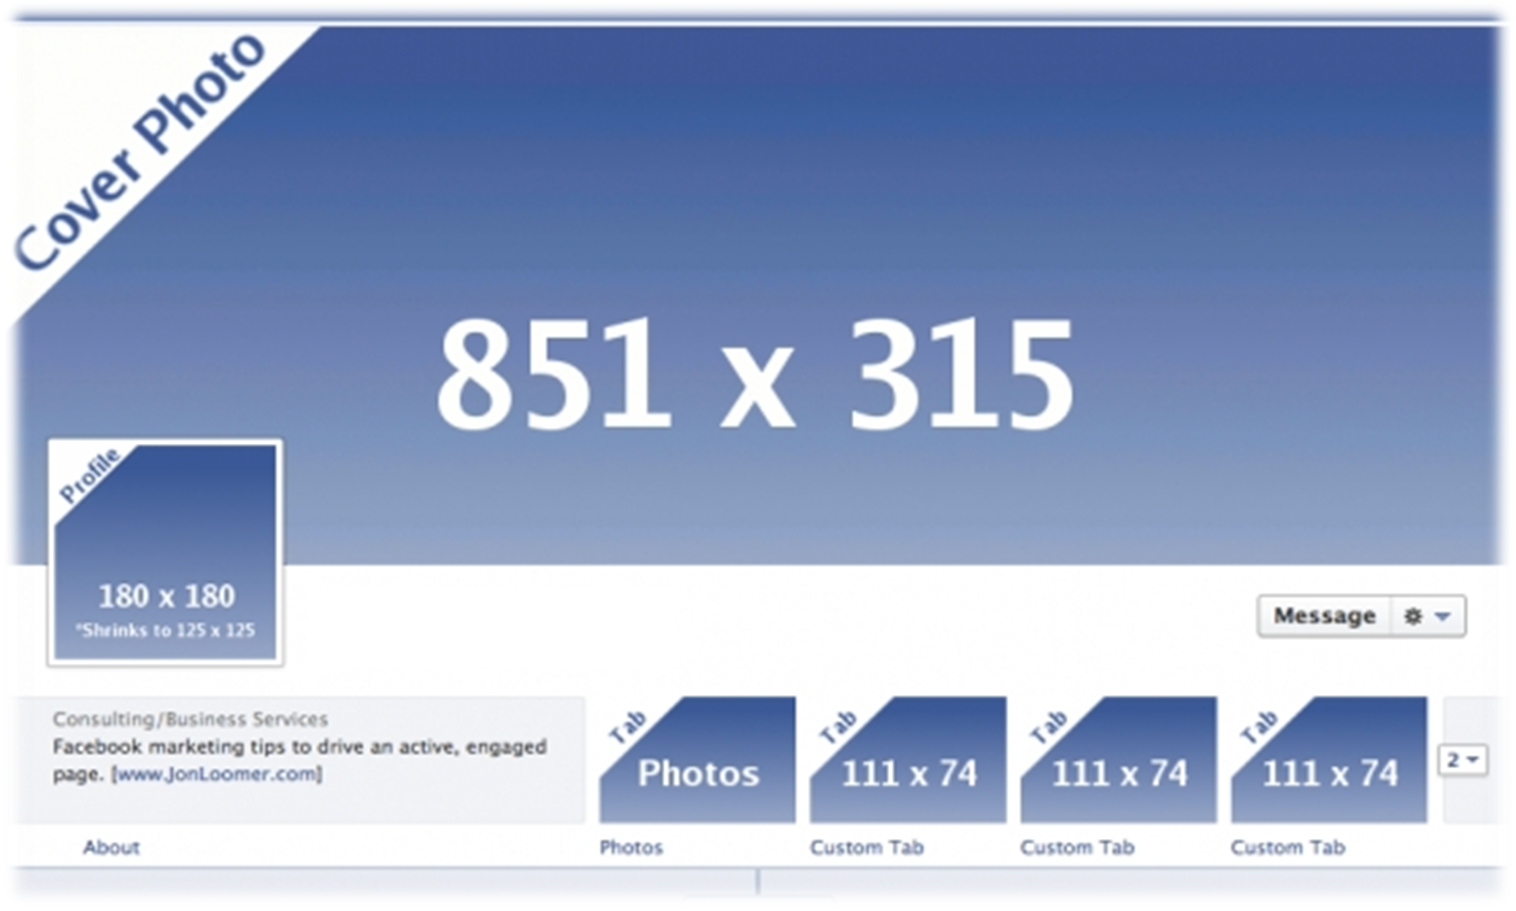 How To Create A Facebook Business Page In 5 Simple Steps Tutorial New Facebook Page Facebook Cover Photos Facebook Timeline